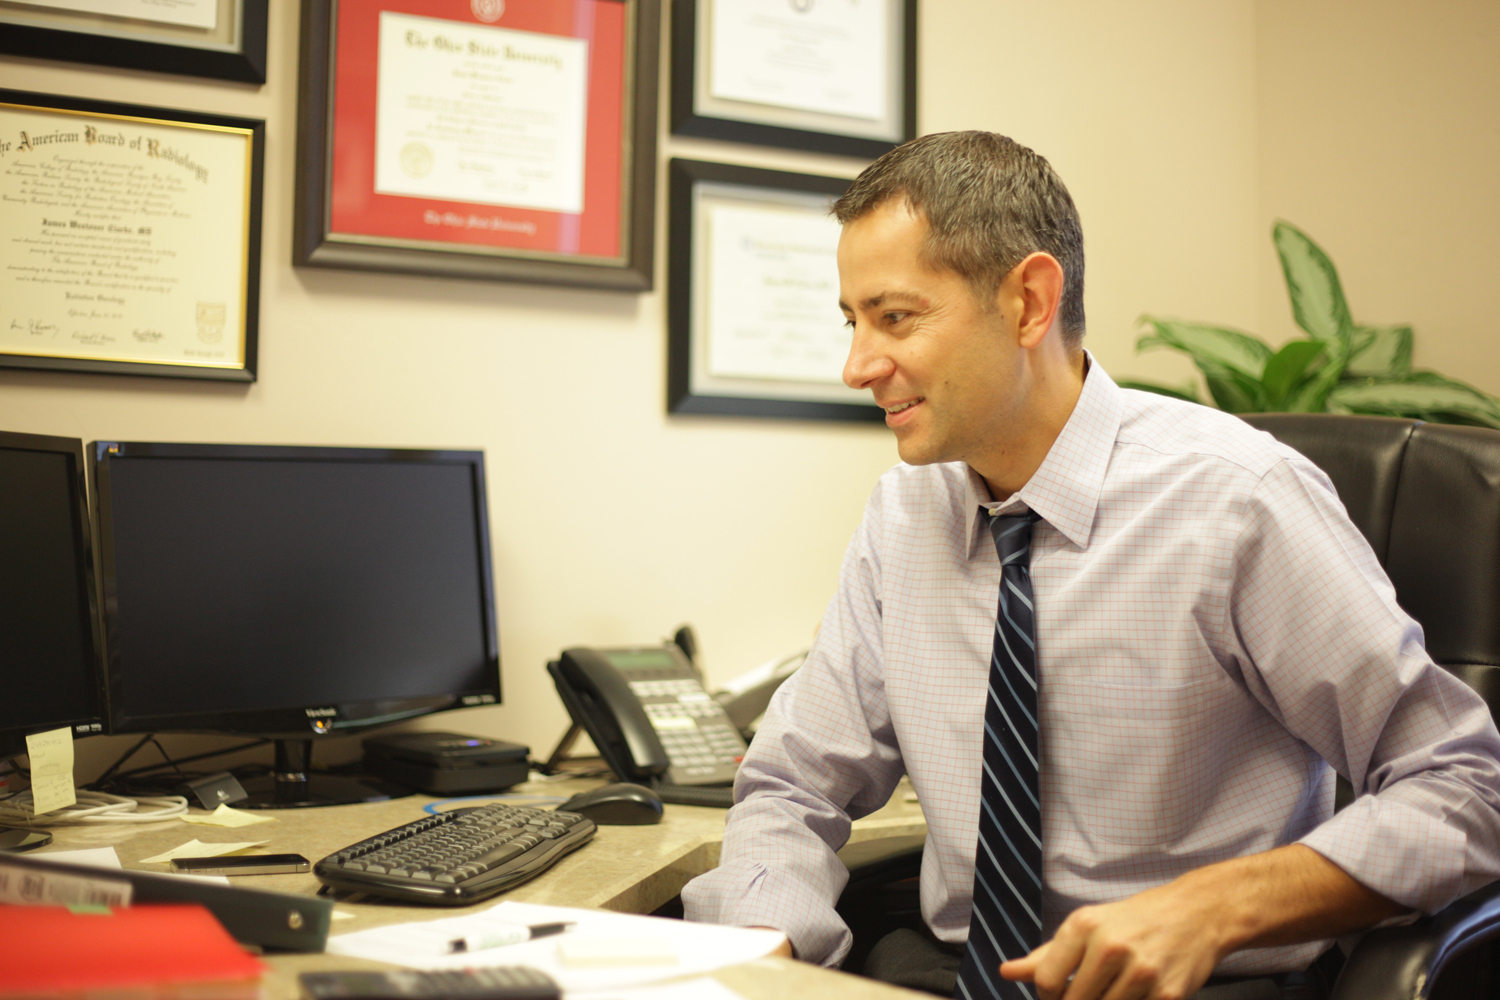 Dr. Jim Clarke, Gamma West Cancer Services, St. George, Utah, 2014 | Photo courtesy of Gamma West, St. George News